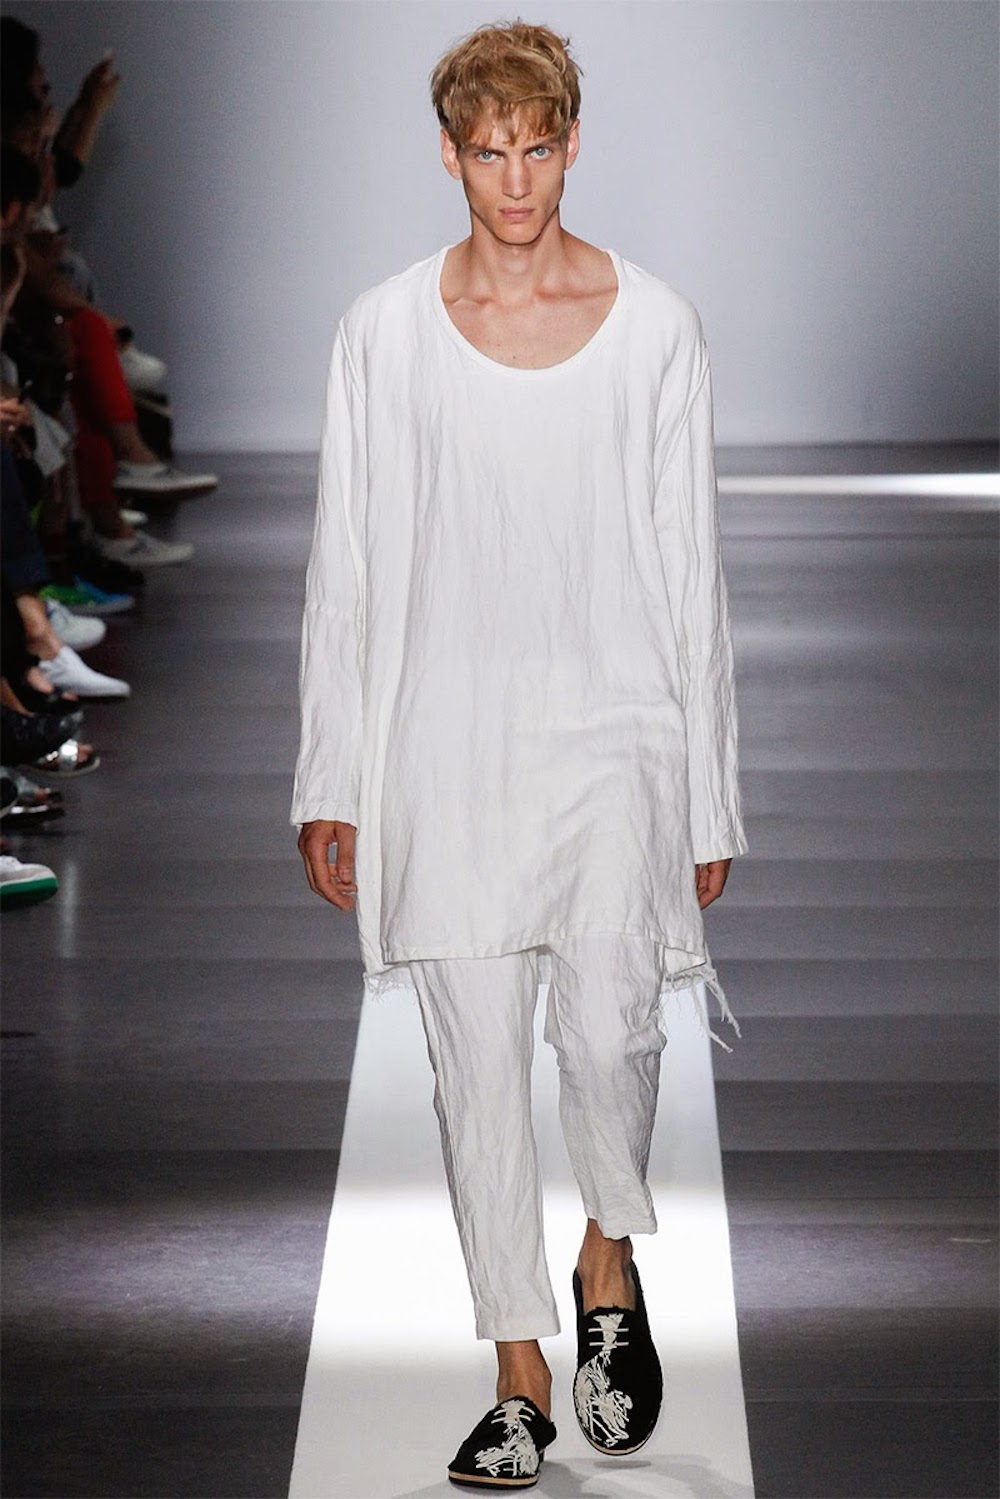 ANN-DEMEULEMEESTER-SPRING-SUMMER-2015-MENS-TRENDS-FASHION_06